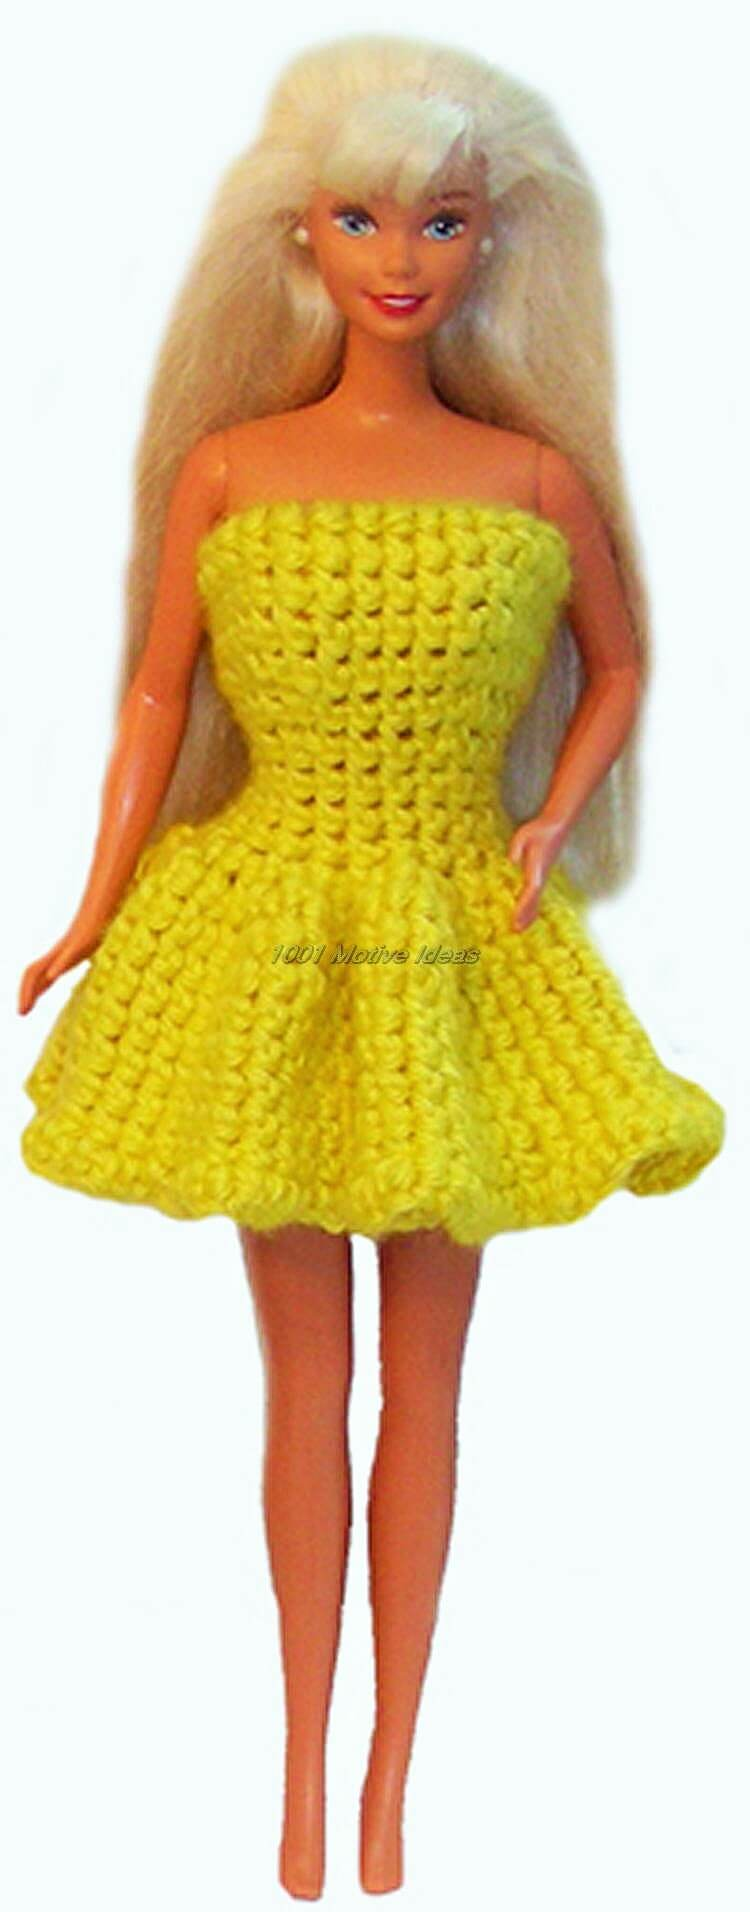 Diy-best-Crochet- Doll-Baby-dress-ideas-04